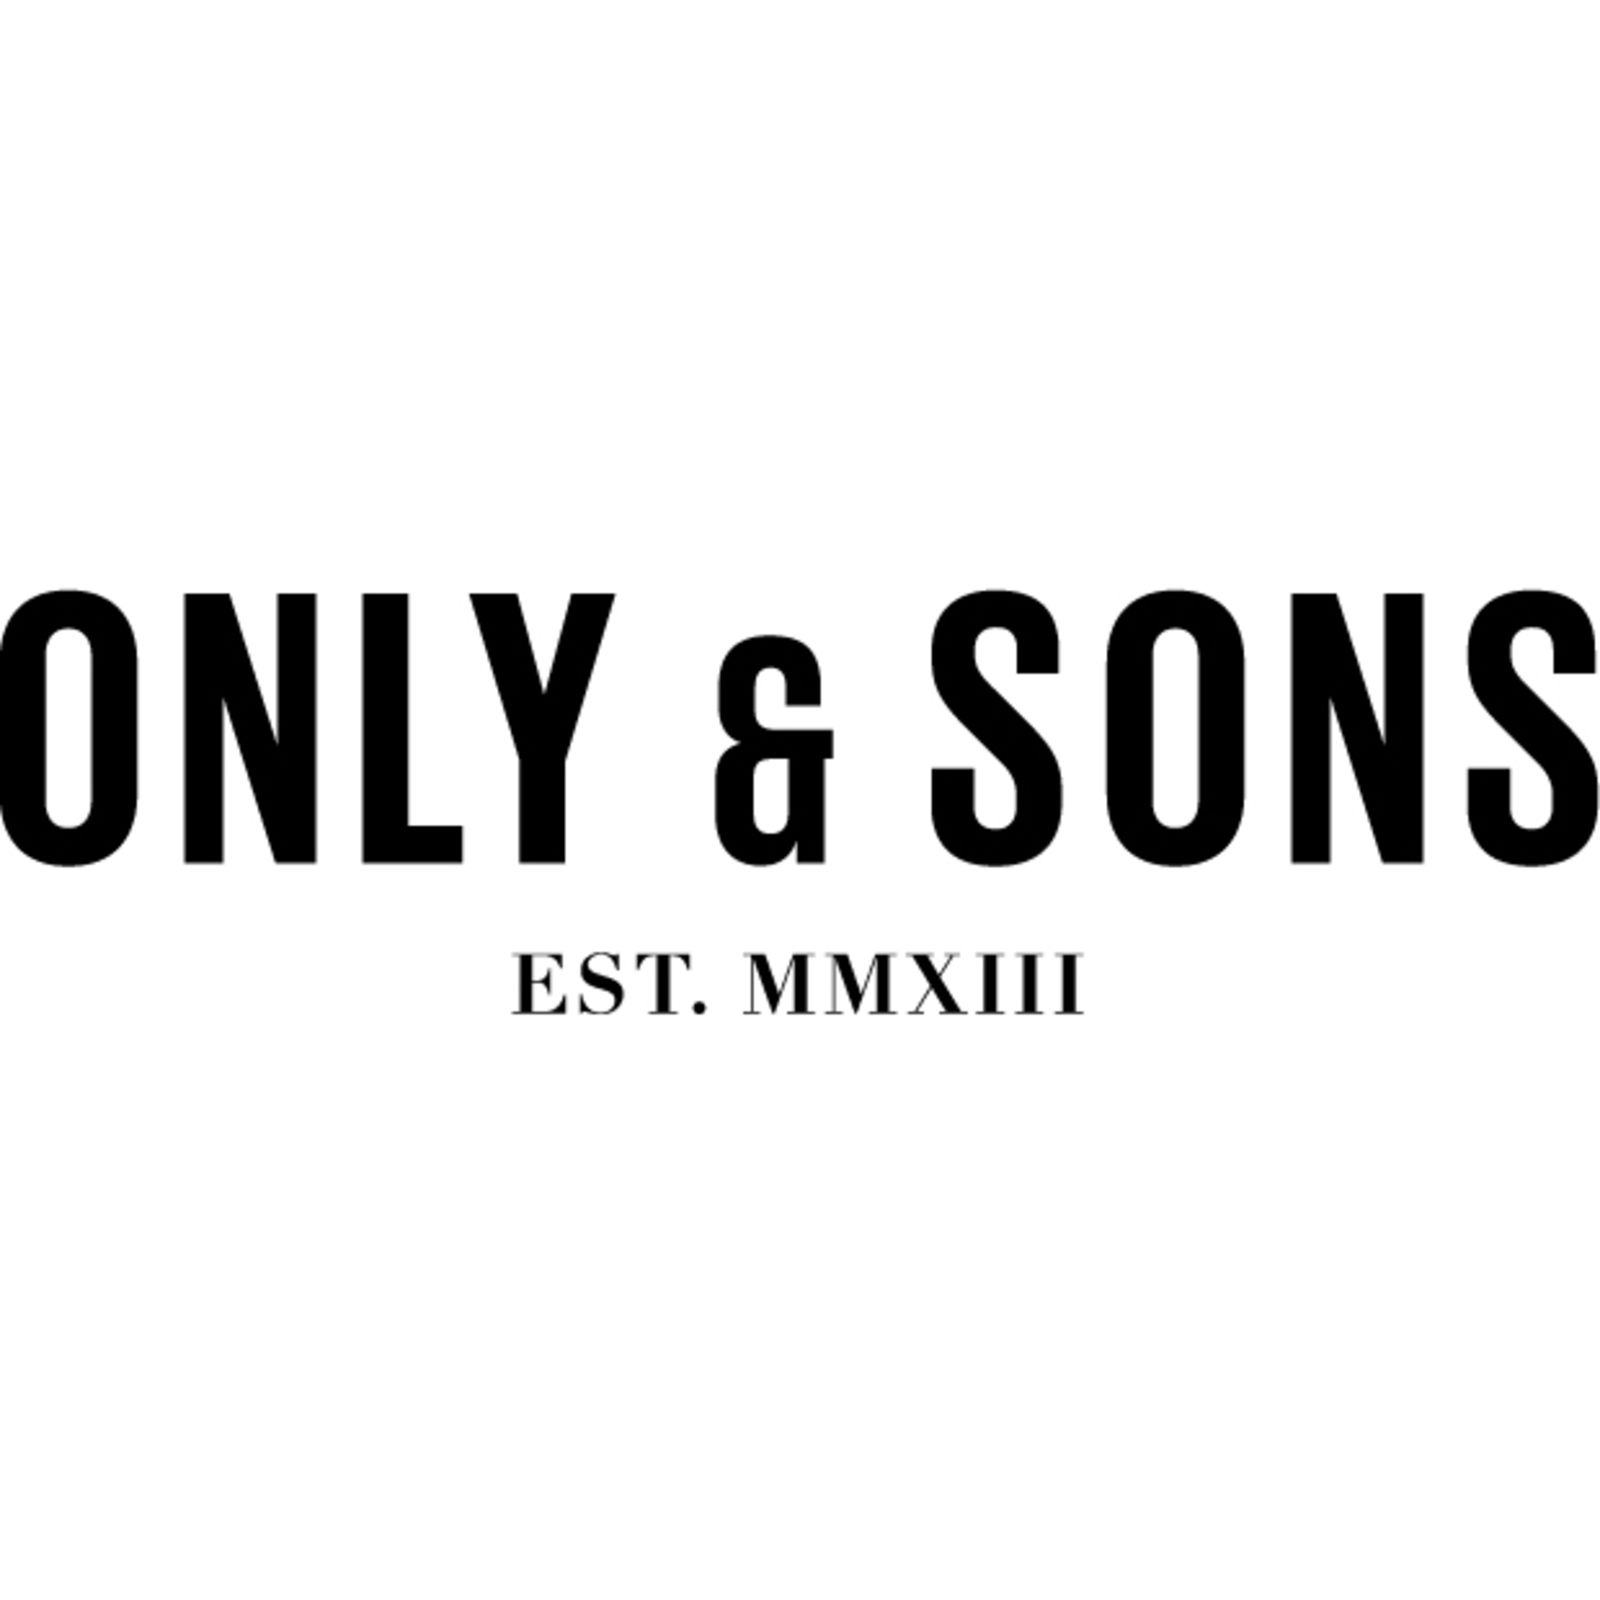 ONLY & SONS (Image 1)